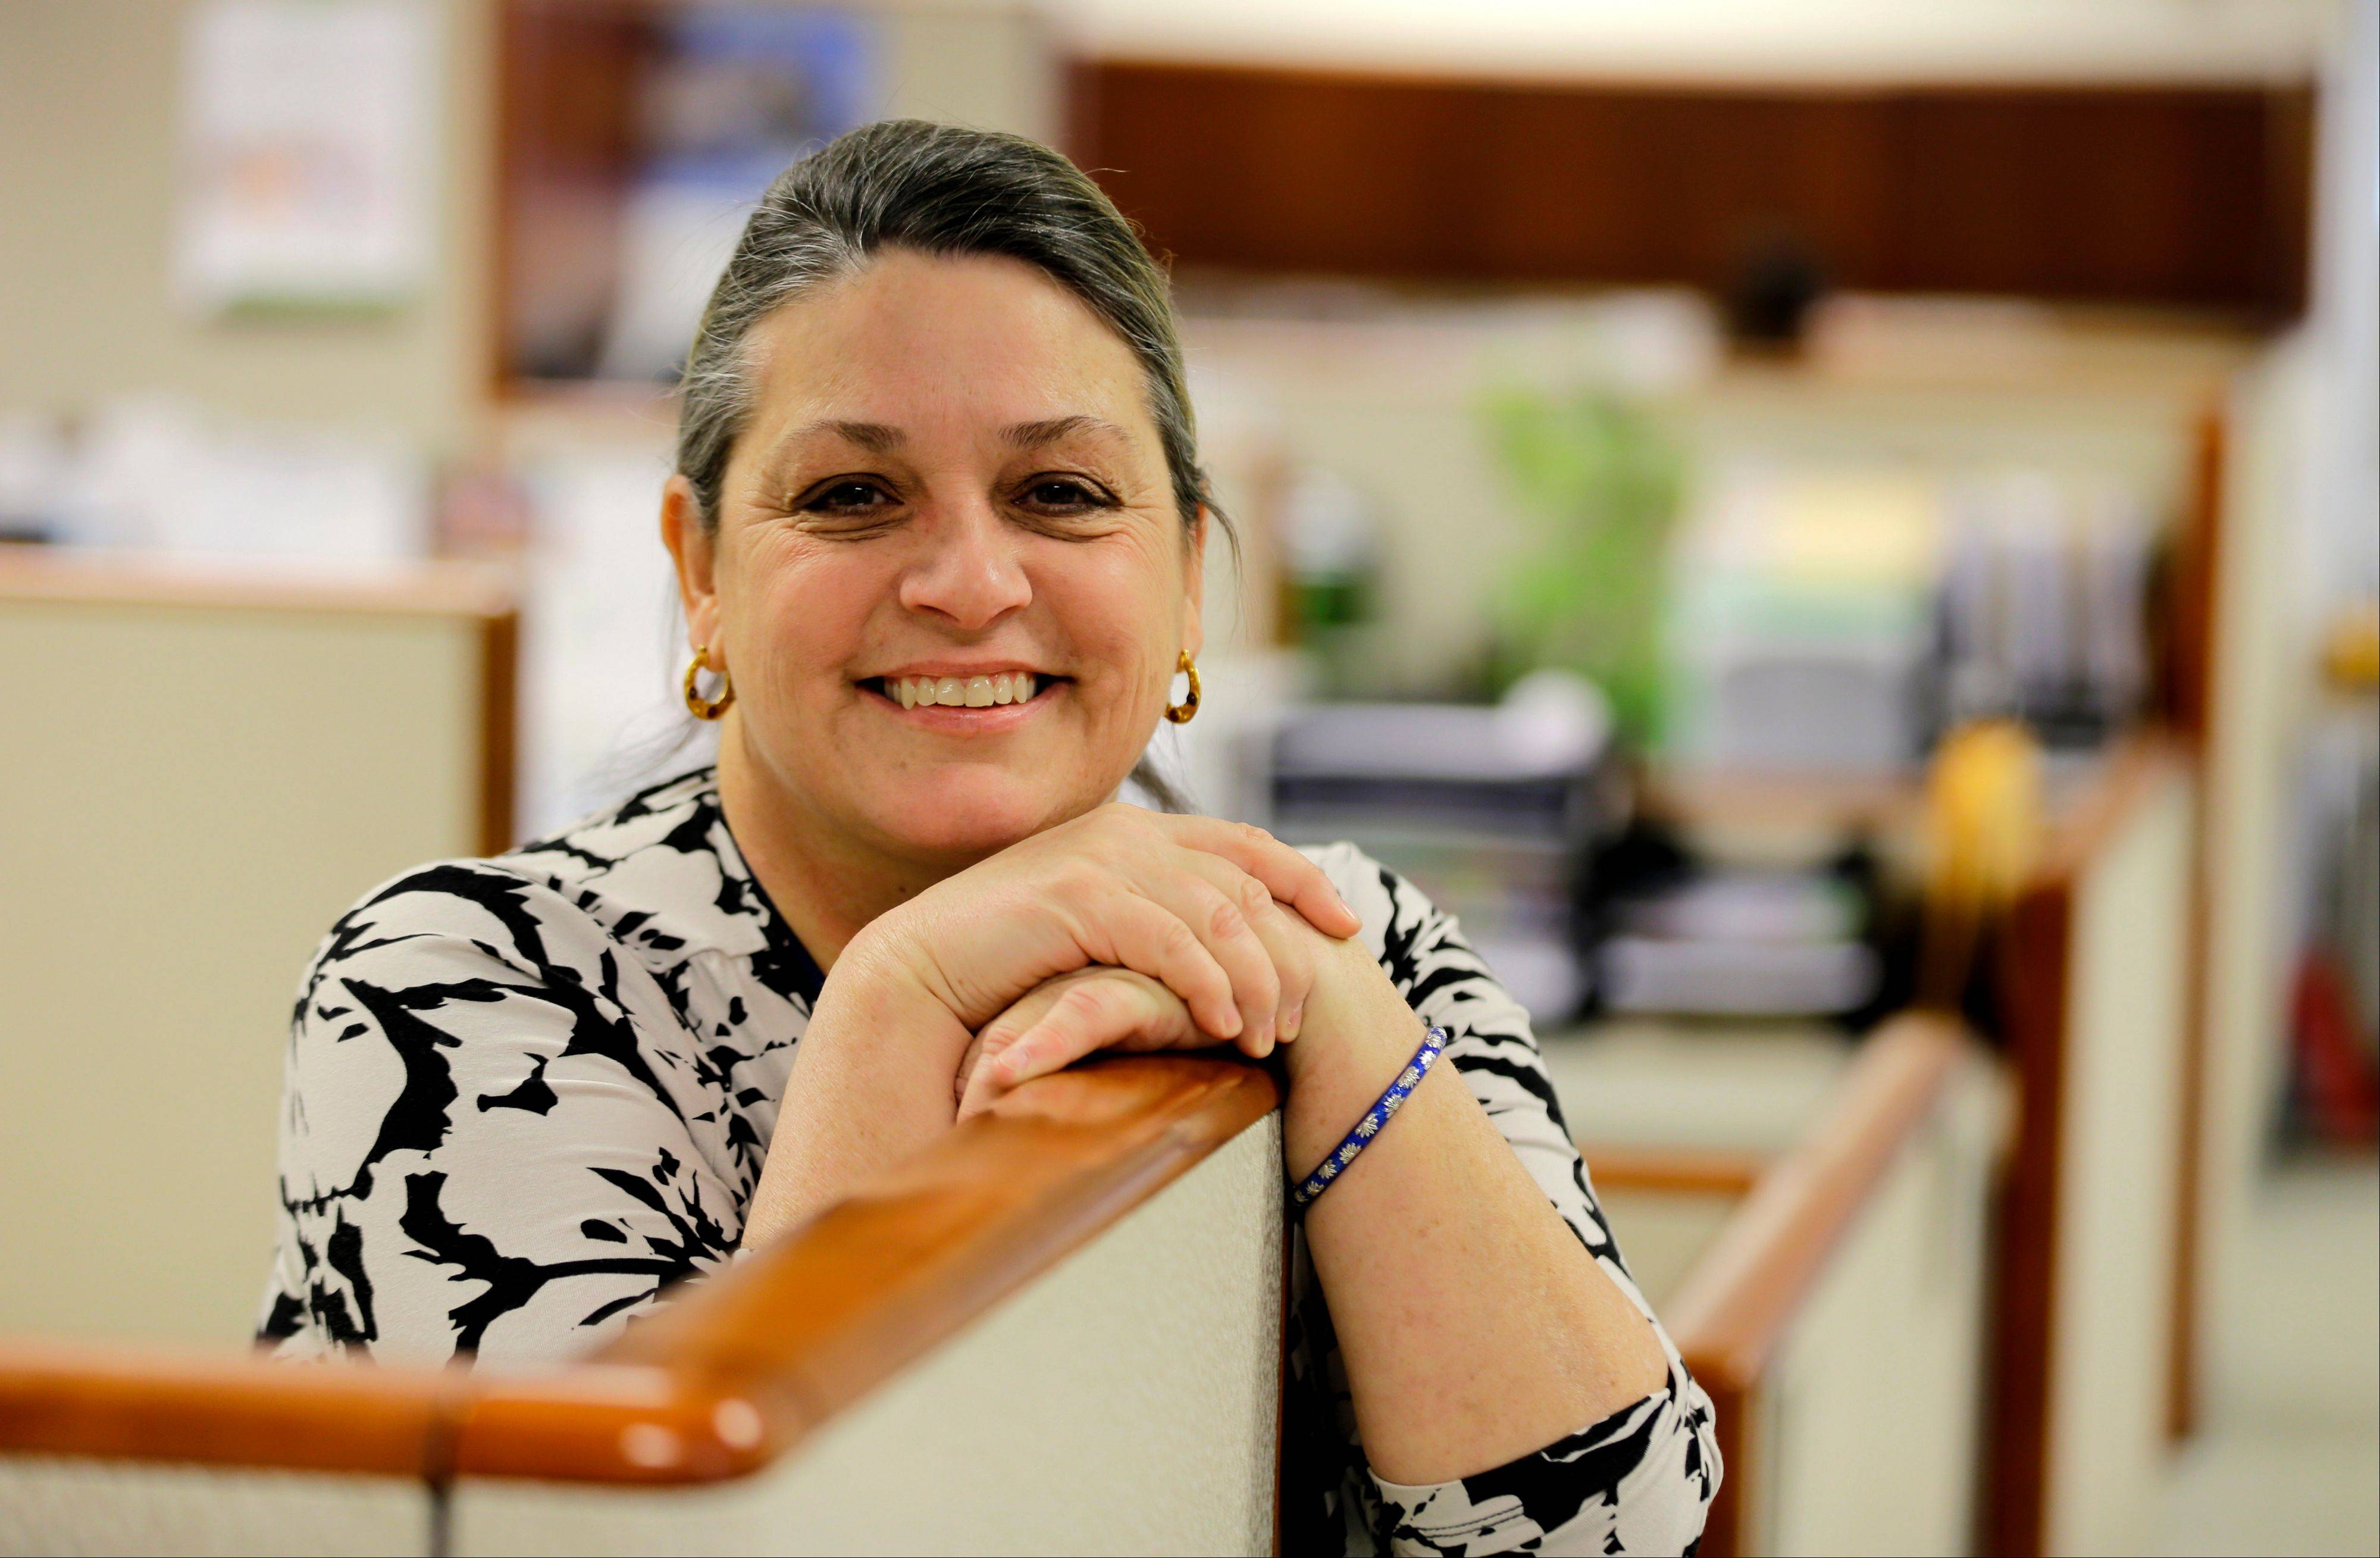 Margaret Fiester, operations manager at the Society for Human Resource Management, is no shrinking violet, but she says working for her former boss, who subjected her to abusive tirades, was a nightmare. She doesn't have to worry about the tirades anymore, but she hears lots of similar stories in her current job, where she often fields questions about the growing issue of workplace bullying.